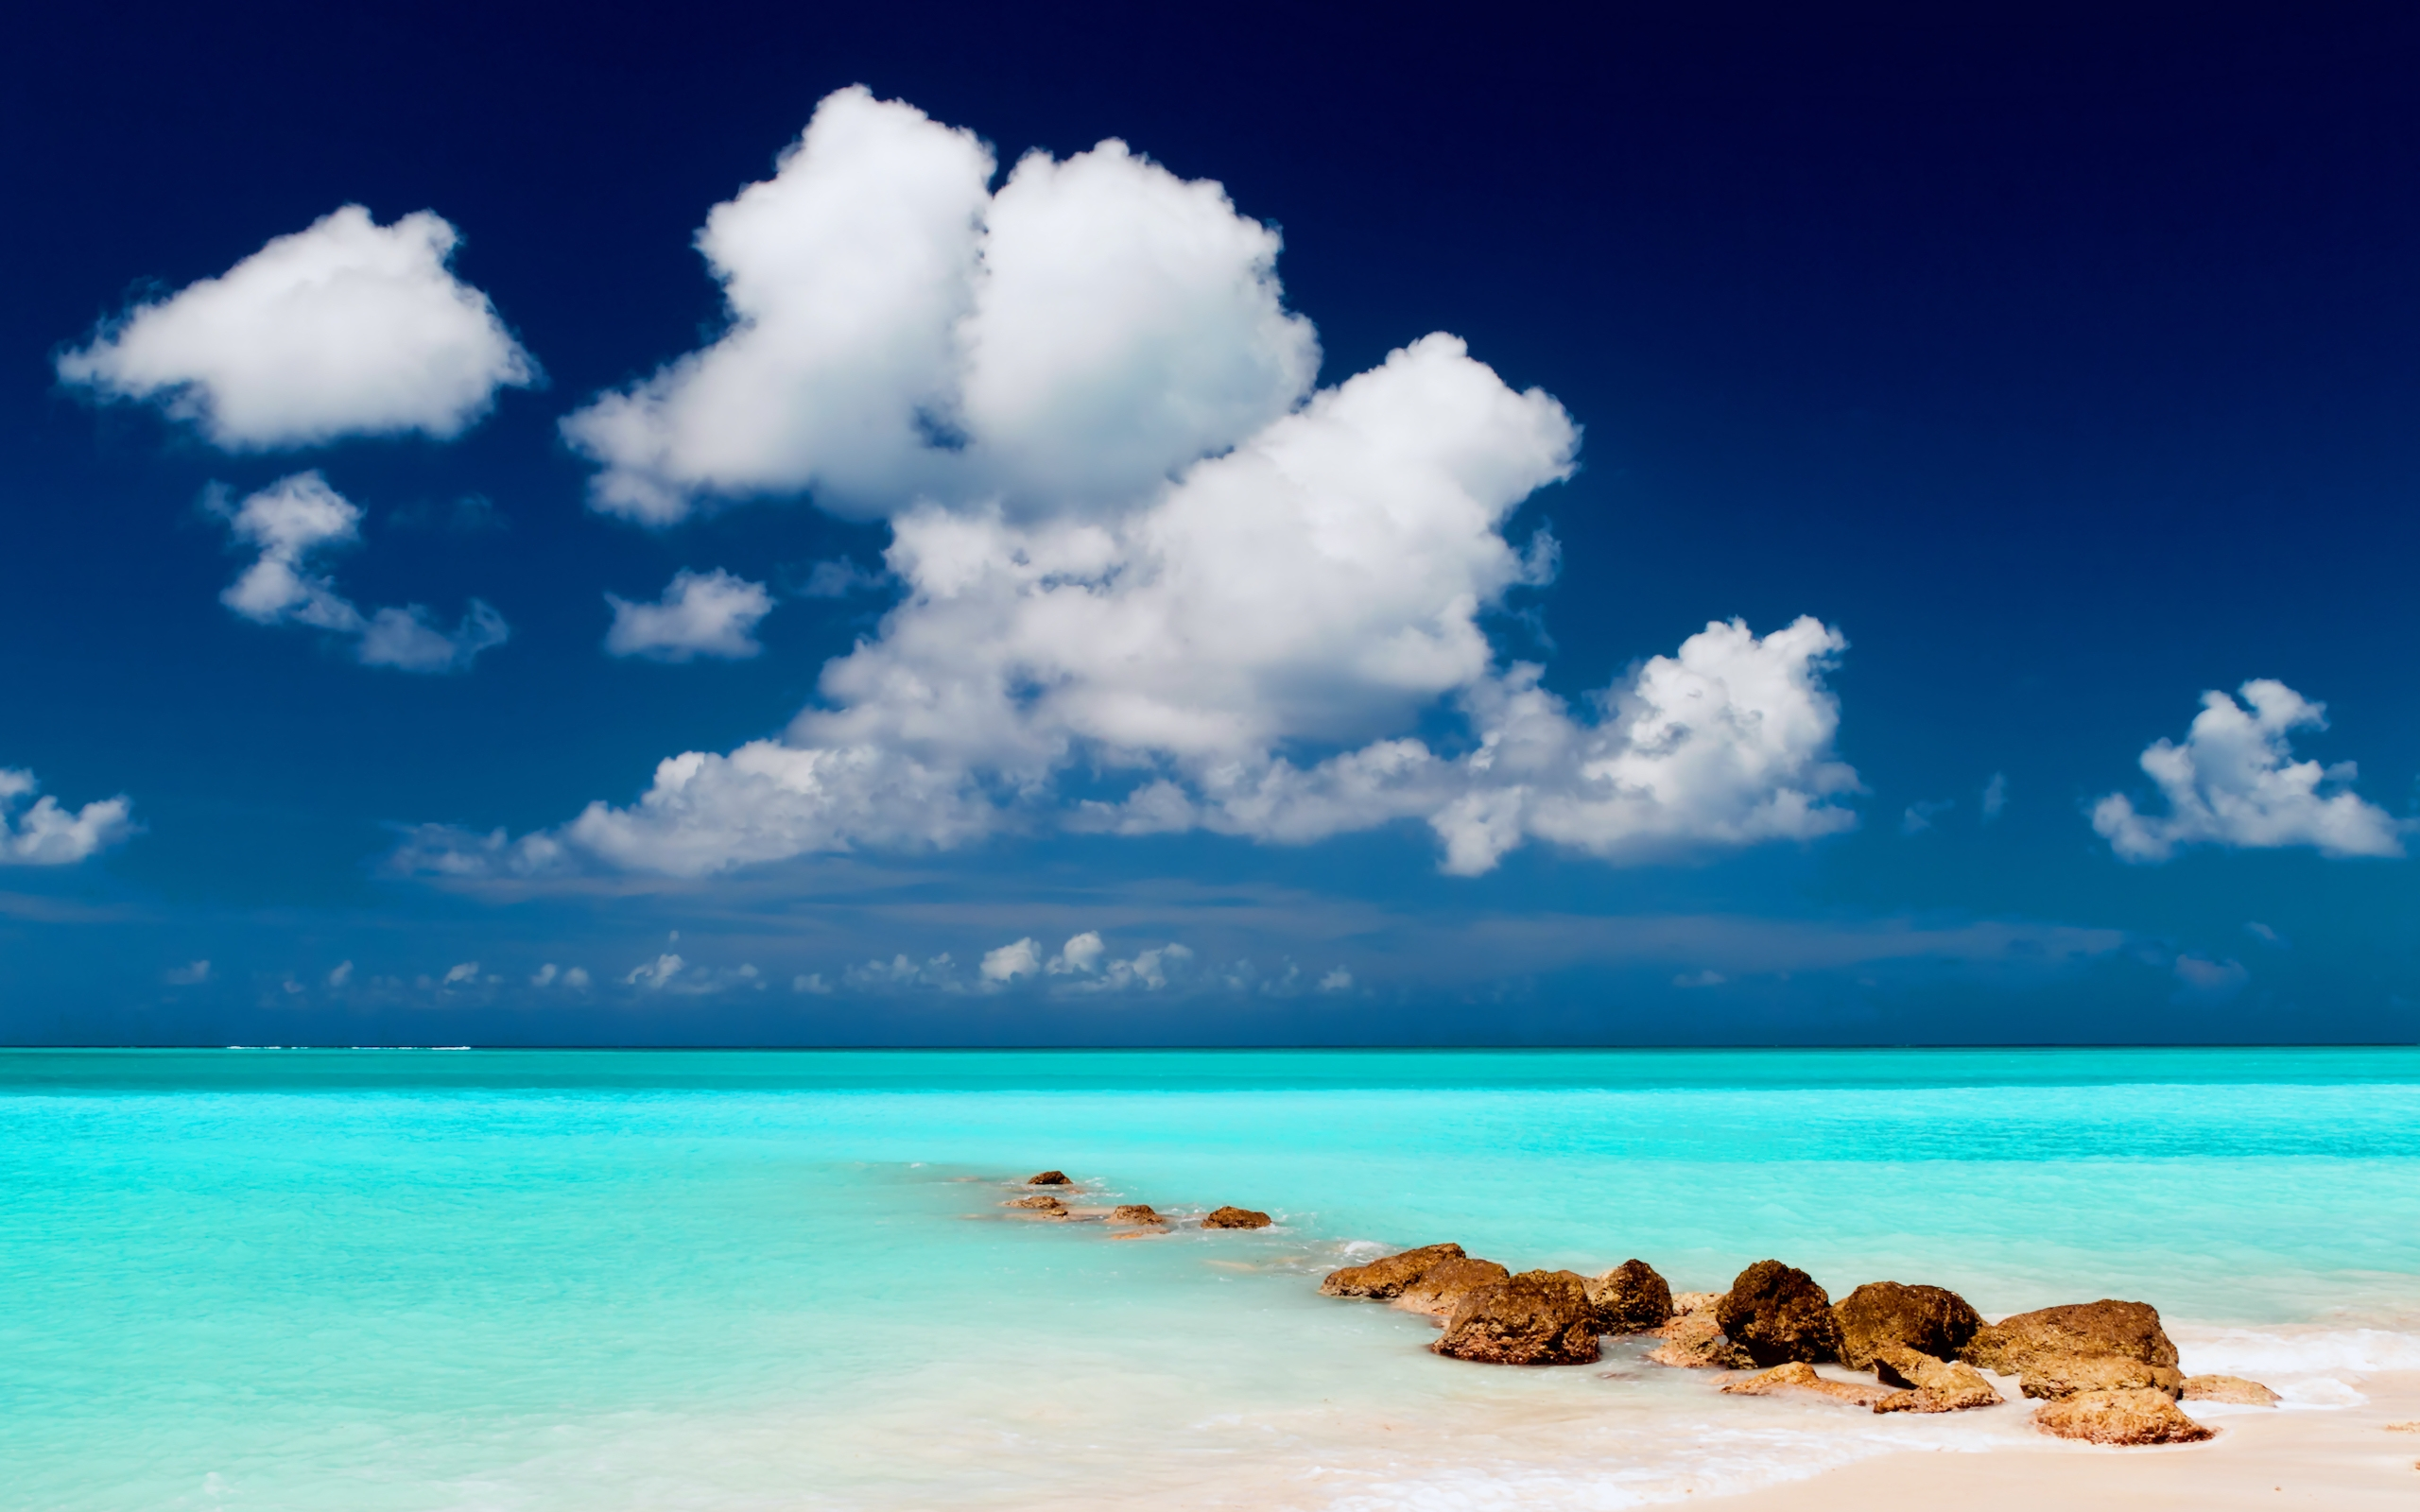 Sea Landscape wallpapers and images - wallpapers, pictures, photos